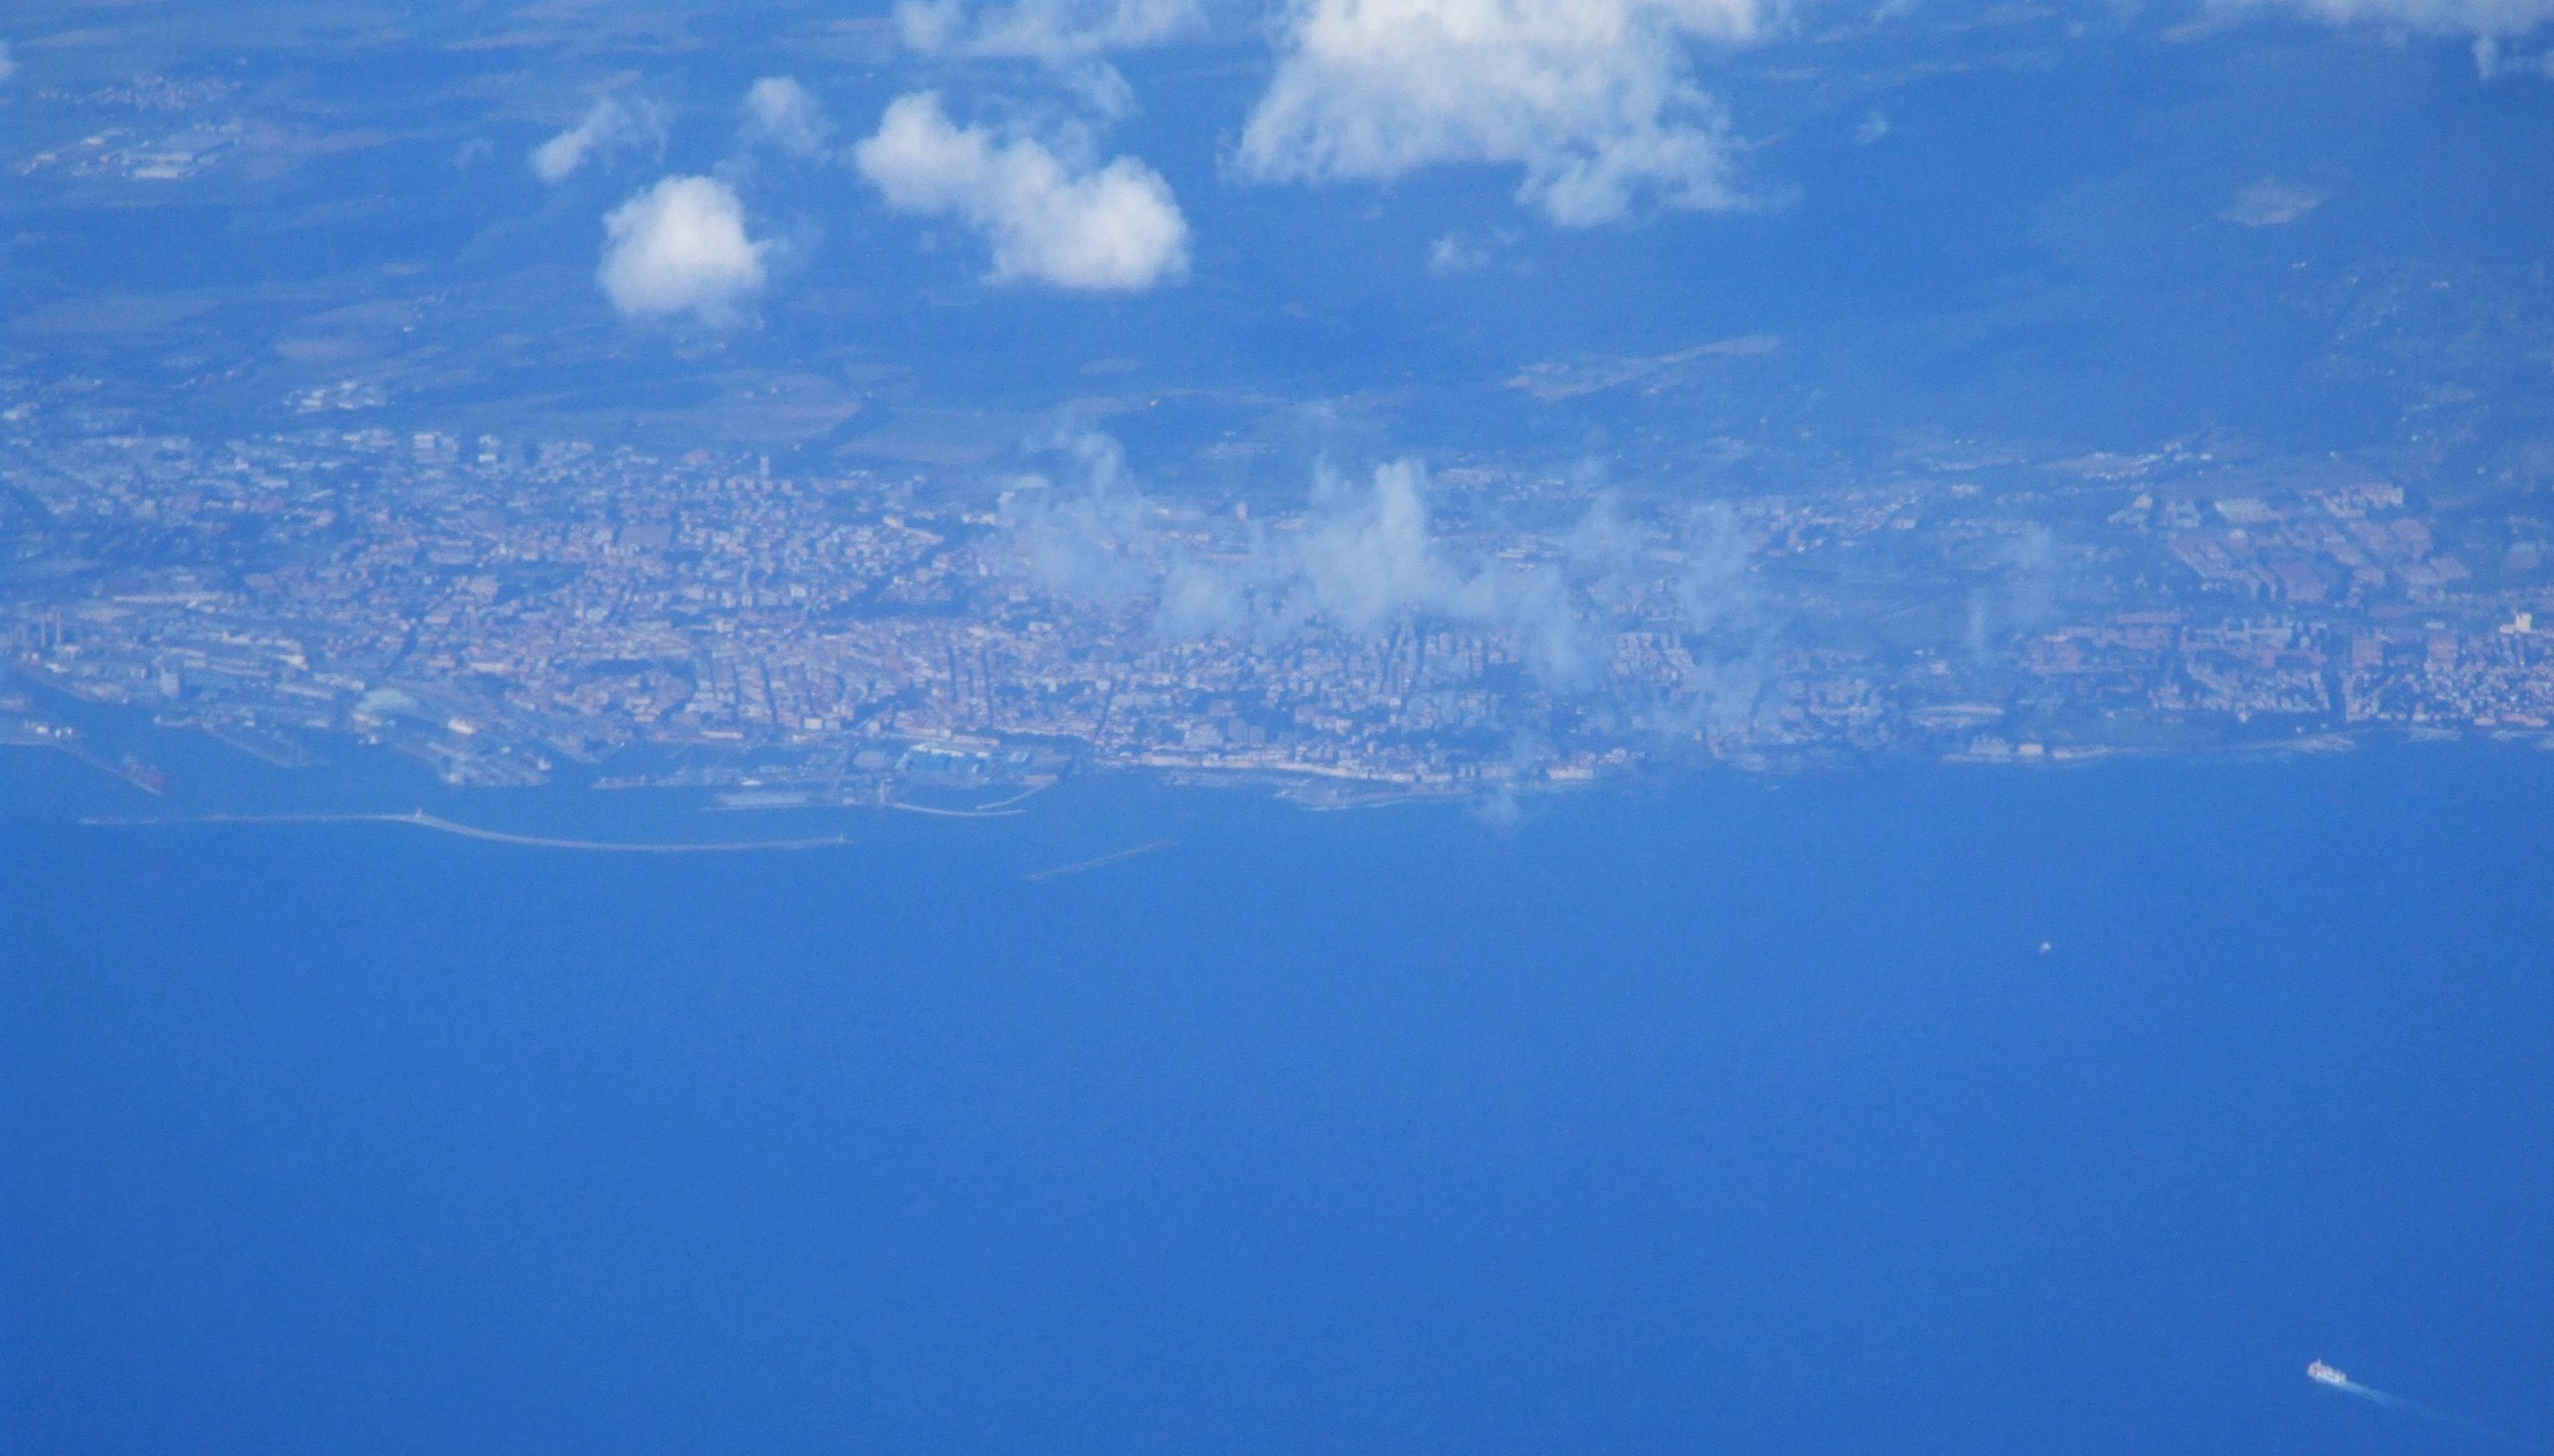 Livorno-toscana-italy - creative commons by gnuckx photo